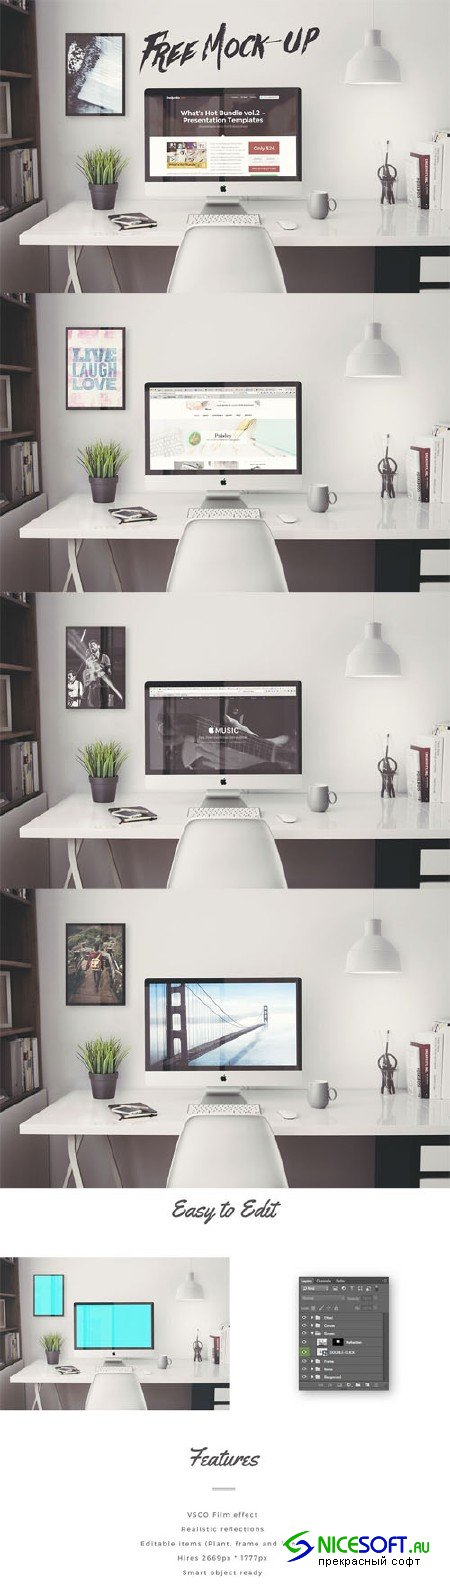 iMac Office Mock-Up PSD Template